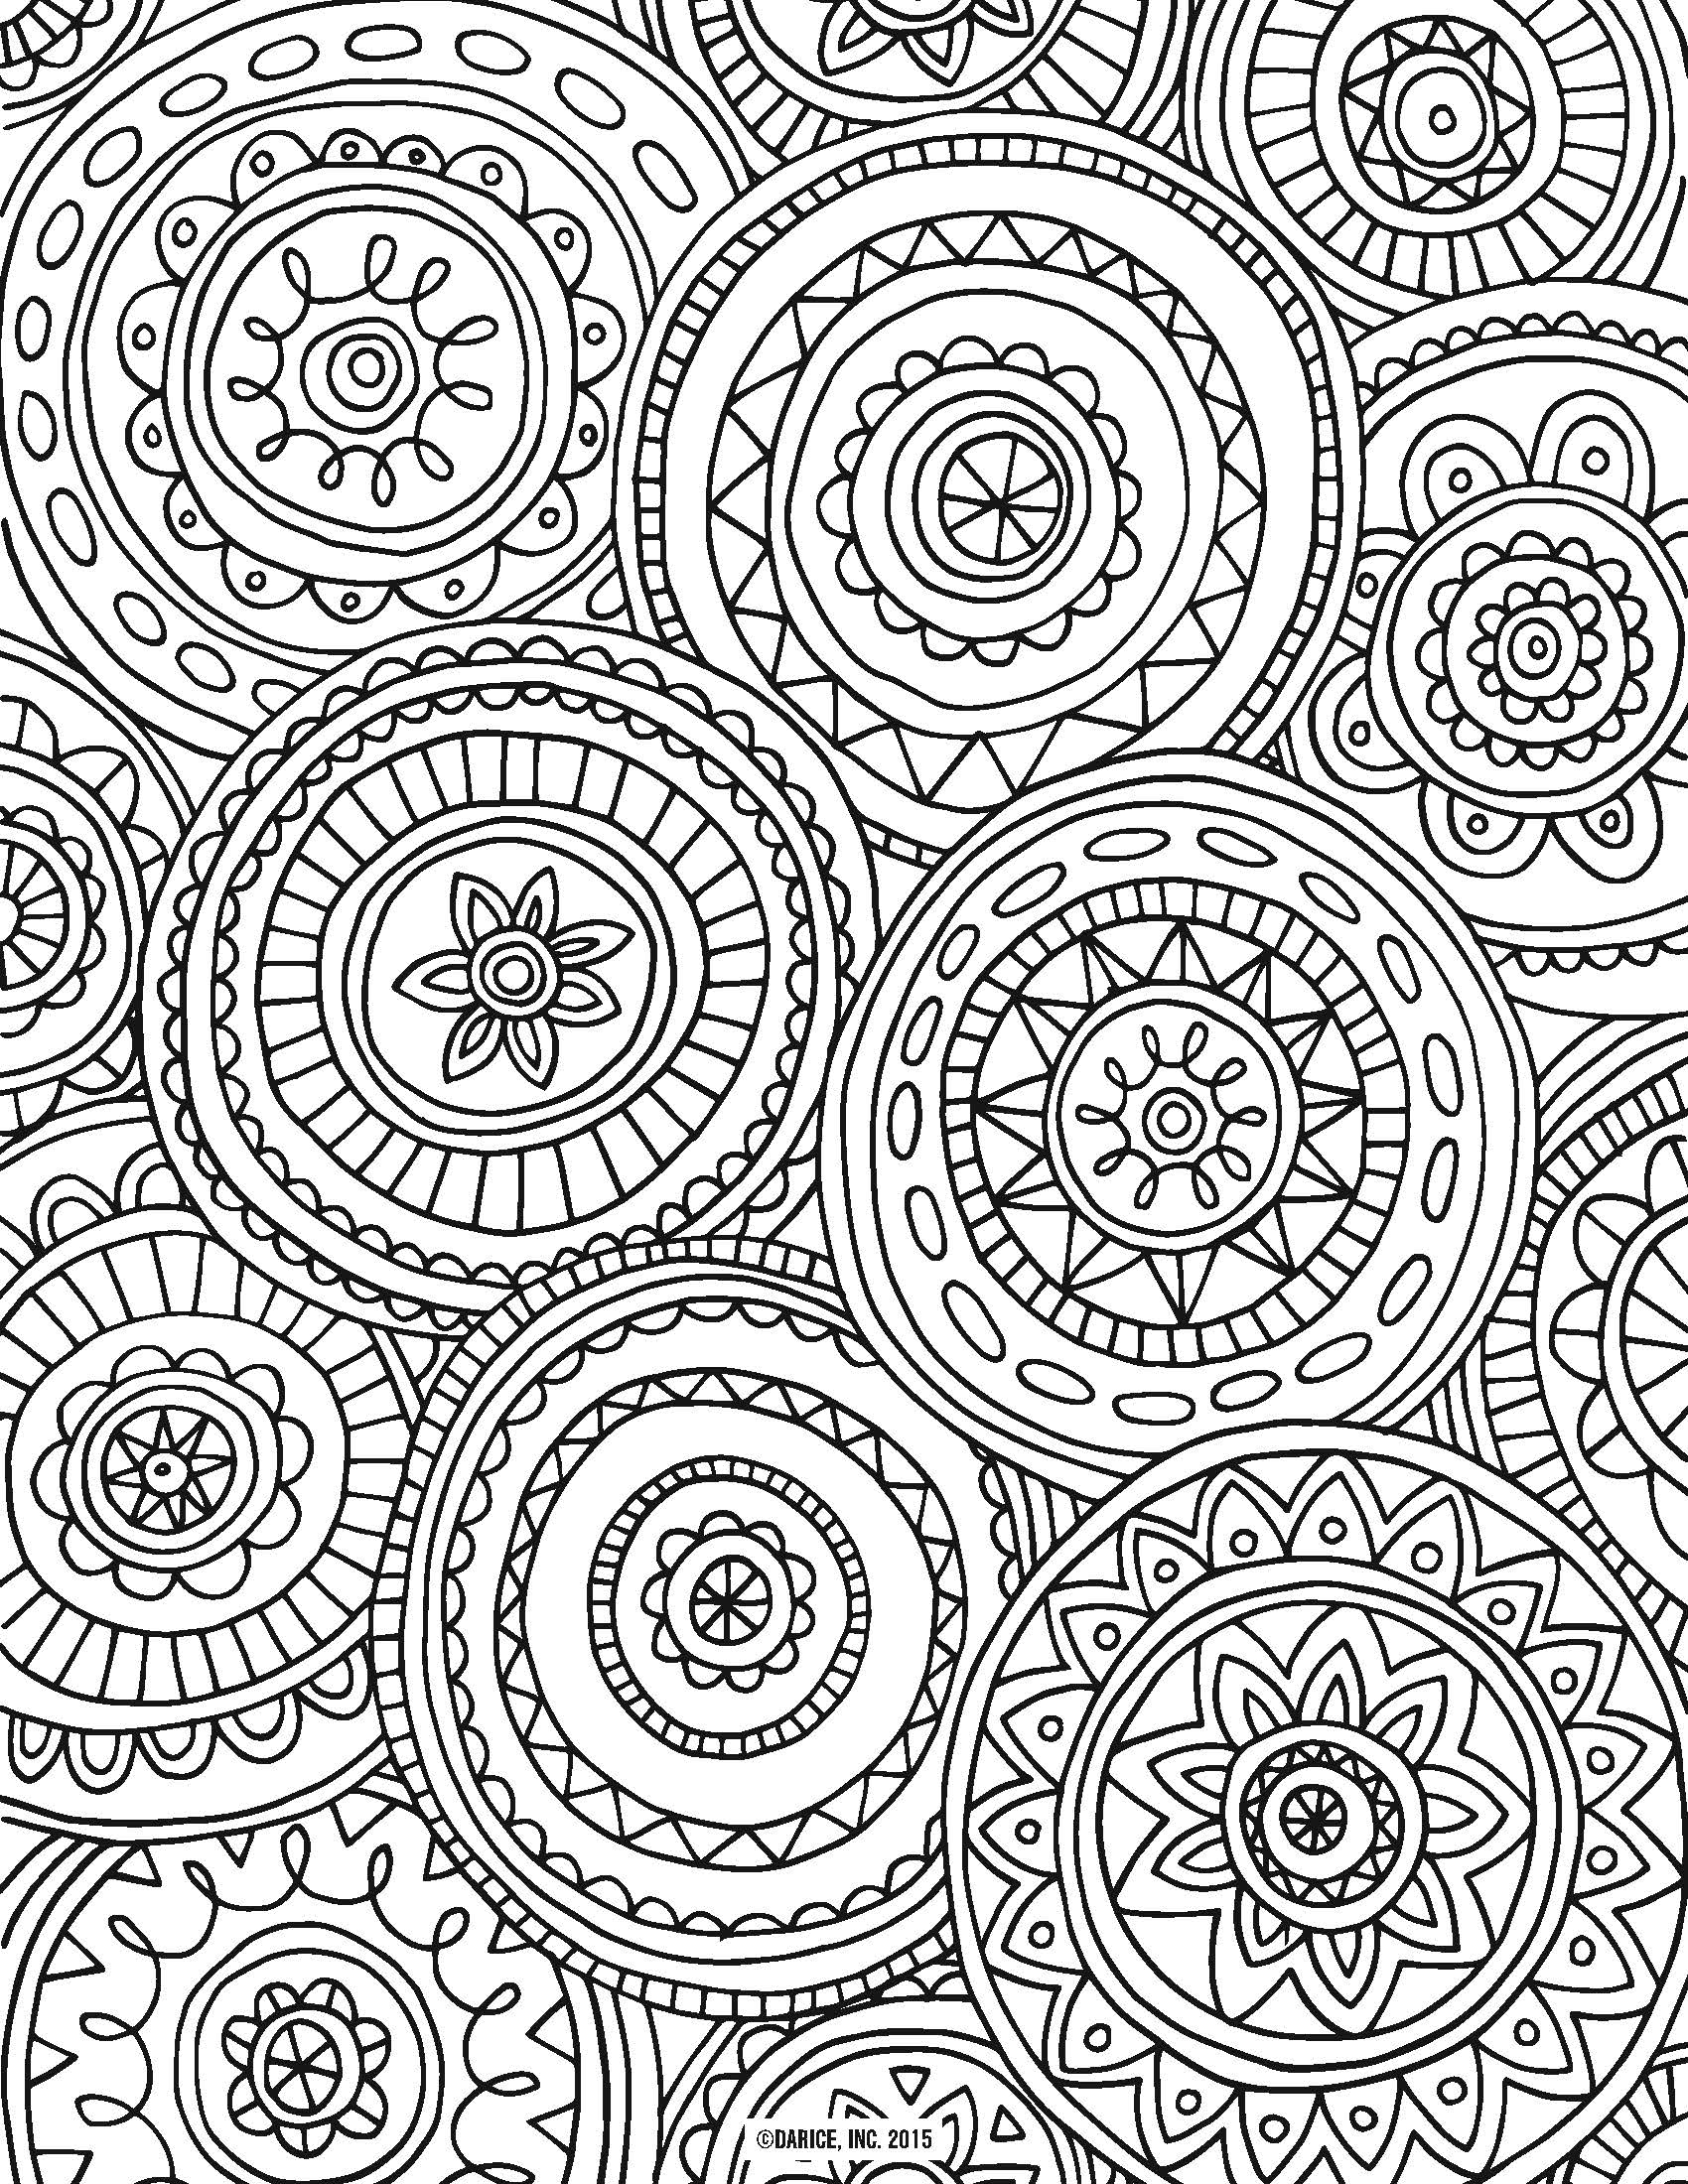 Free printable colouring in adults - 19 Of The Best Colouring Pages Free Printables For Everyone